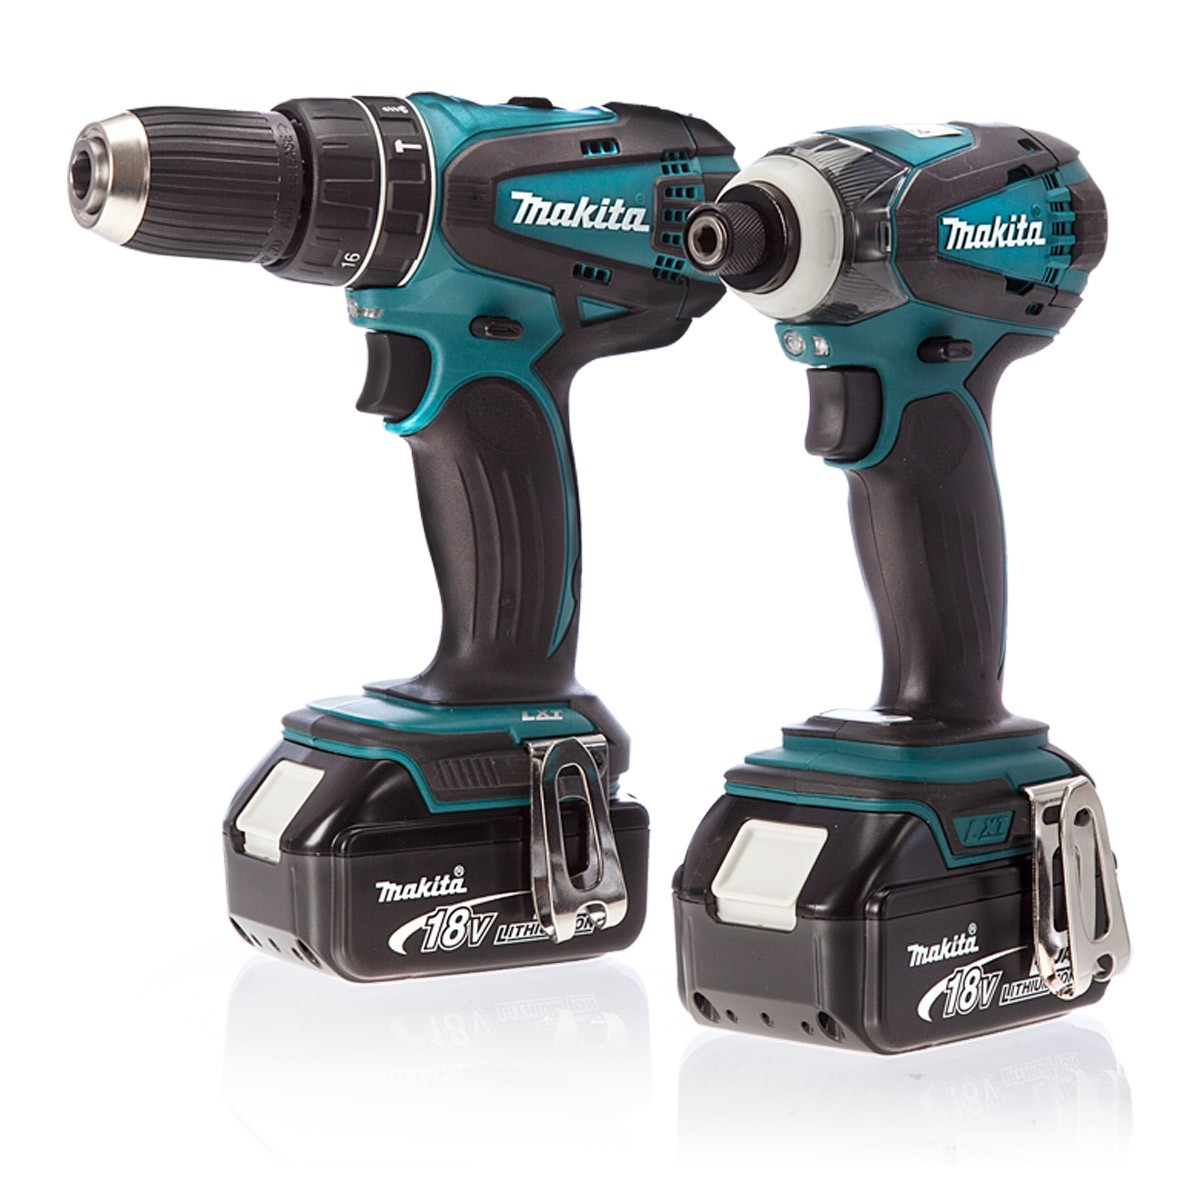 makita dlx2012mx 18v combi drill impact driver 2 x 4ah li ion batts powertool world. Black Bedroom Furniture Sets. Home Design Ideas